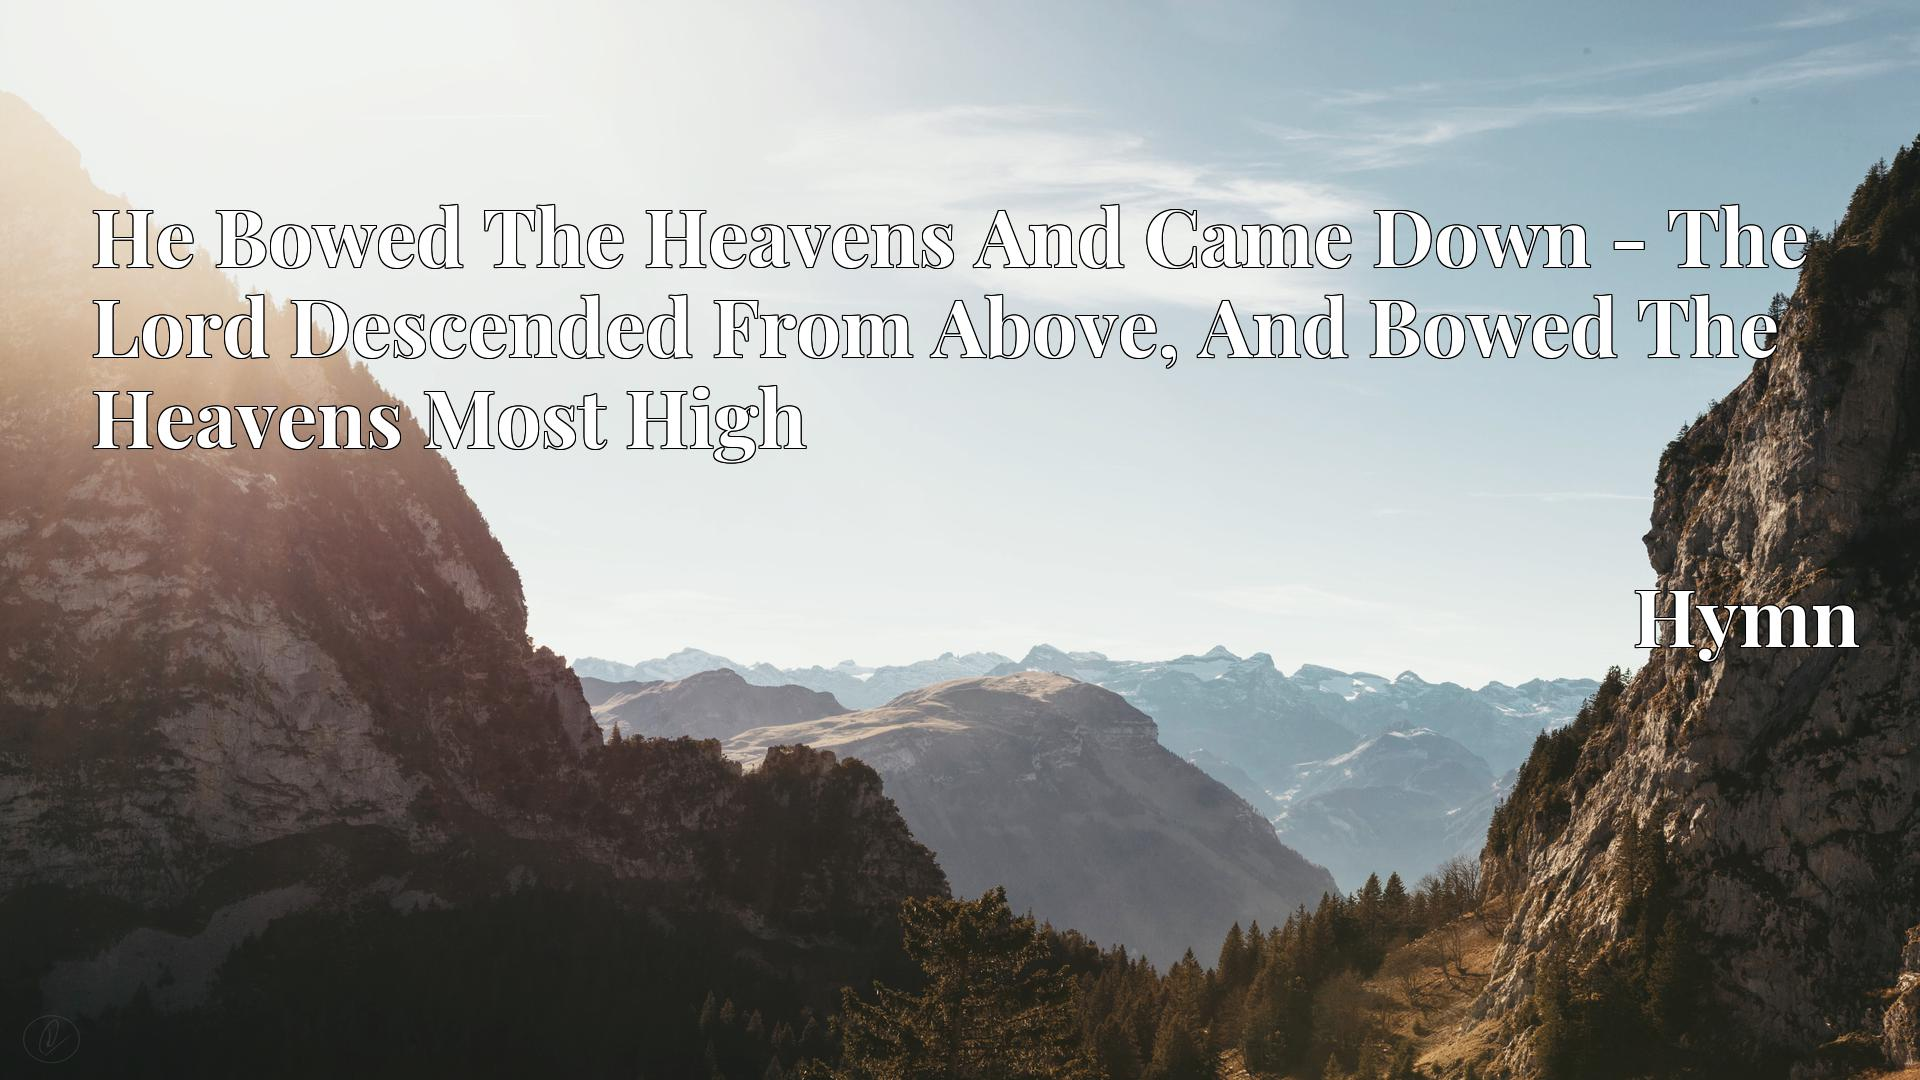 He Bowed The Heavens And Came Down - The Lord Descended From Above, And Bowed The Heavens Most High - Hymn